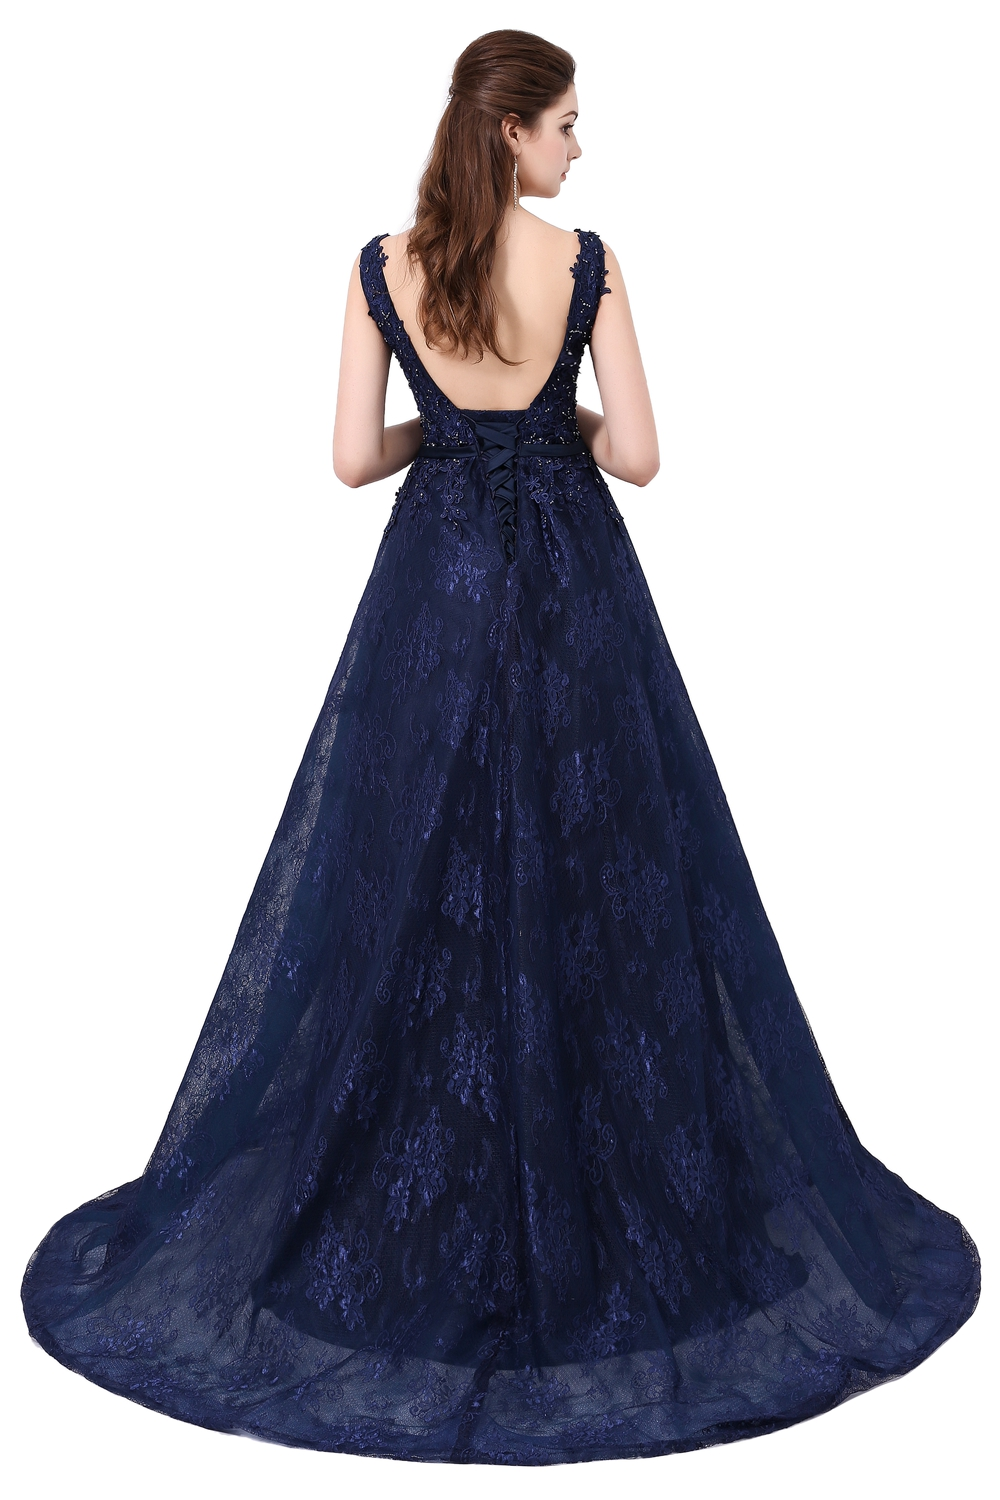 Dinner Party Dress Part - 32: Aliexpress.com : Buy SSYFashion Dinner Party Evening Dress 2017 Style The  Bride Elegant Lace V Neck Backless Sweep Train Long Prom Dresses Custom  From ...